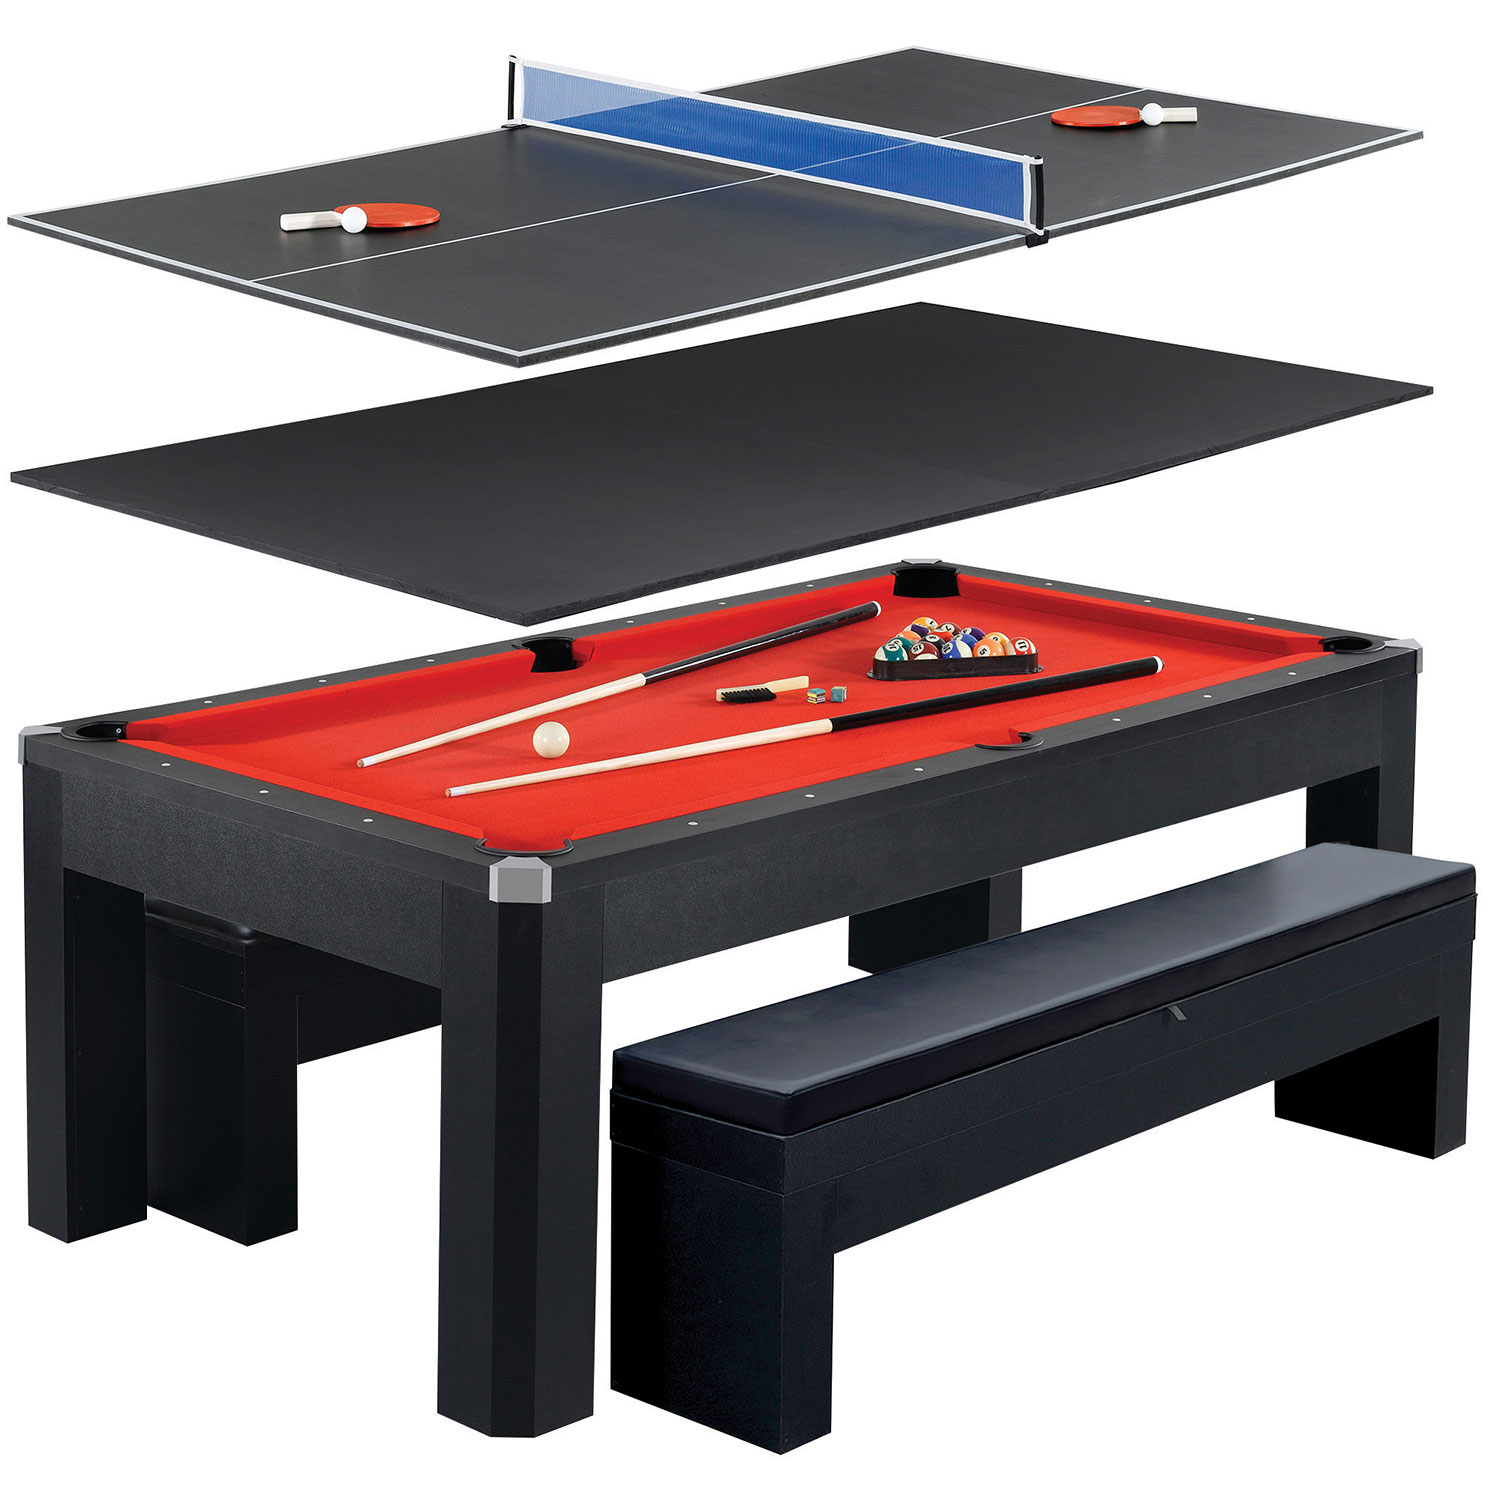 "Hathaway Park Avenue 84"" Multi Game Table Multi Game Tables"